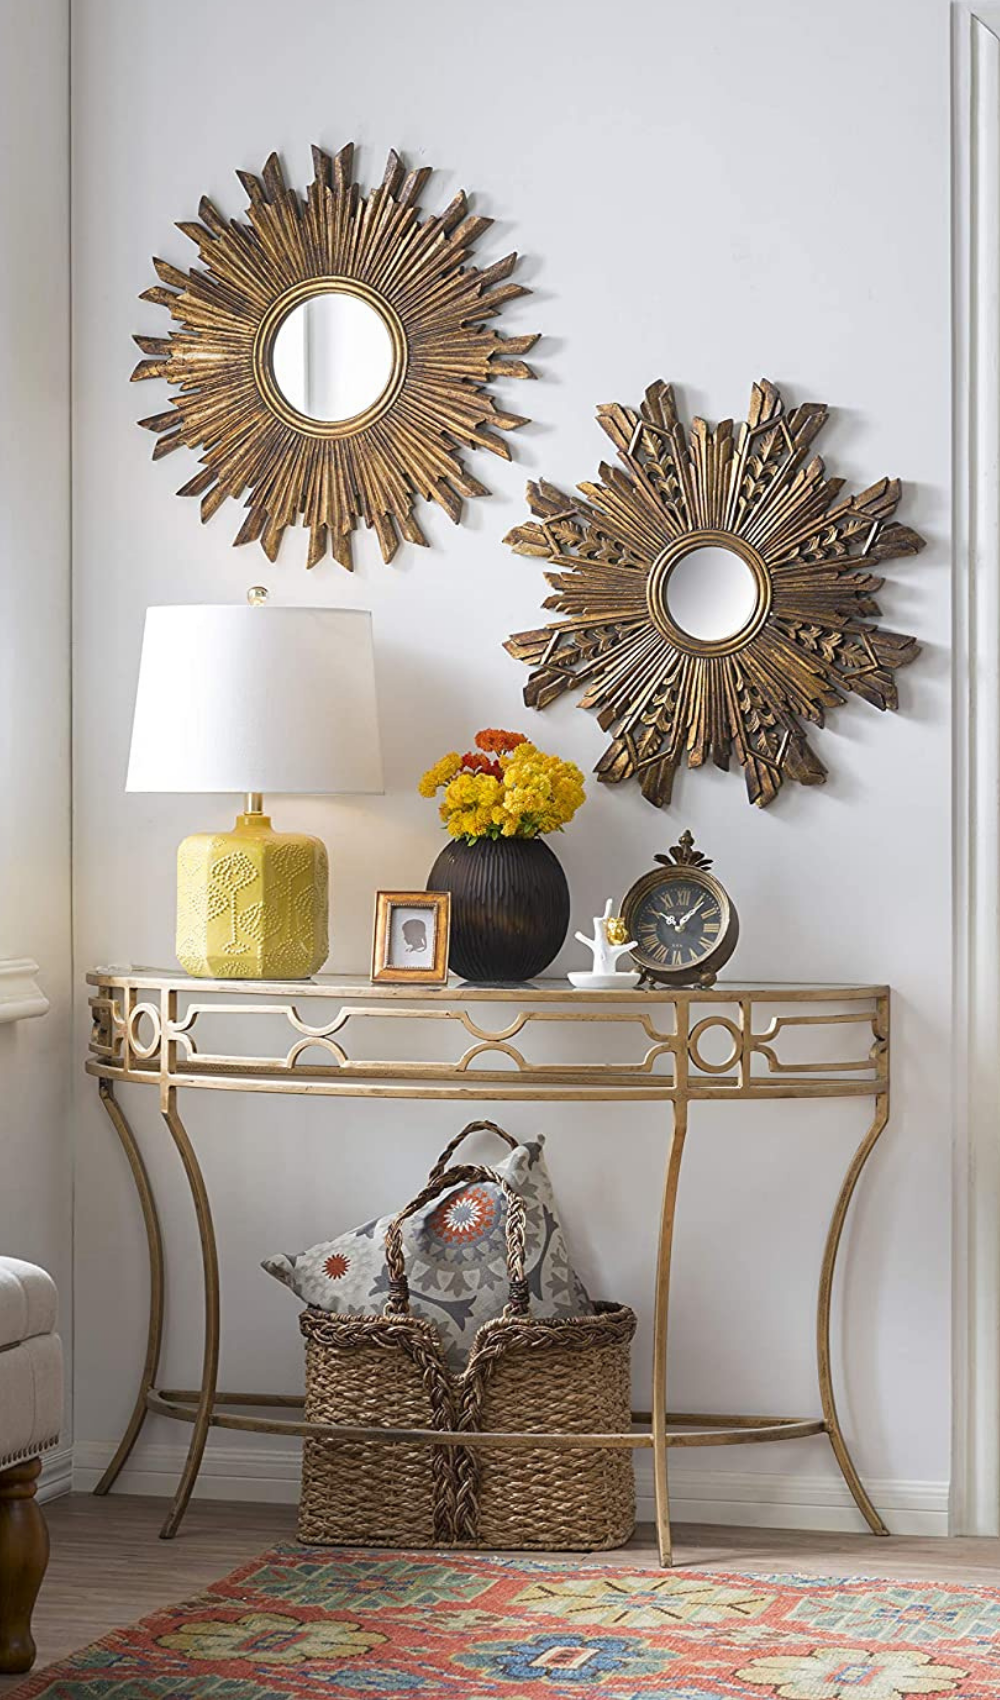 Decorative Wall Mirror With Gold Finish In 2021 Home Decor Living Room Styles Rustic Winter Decor